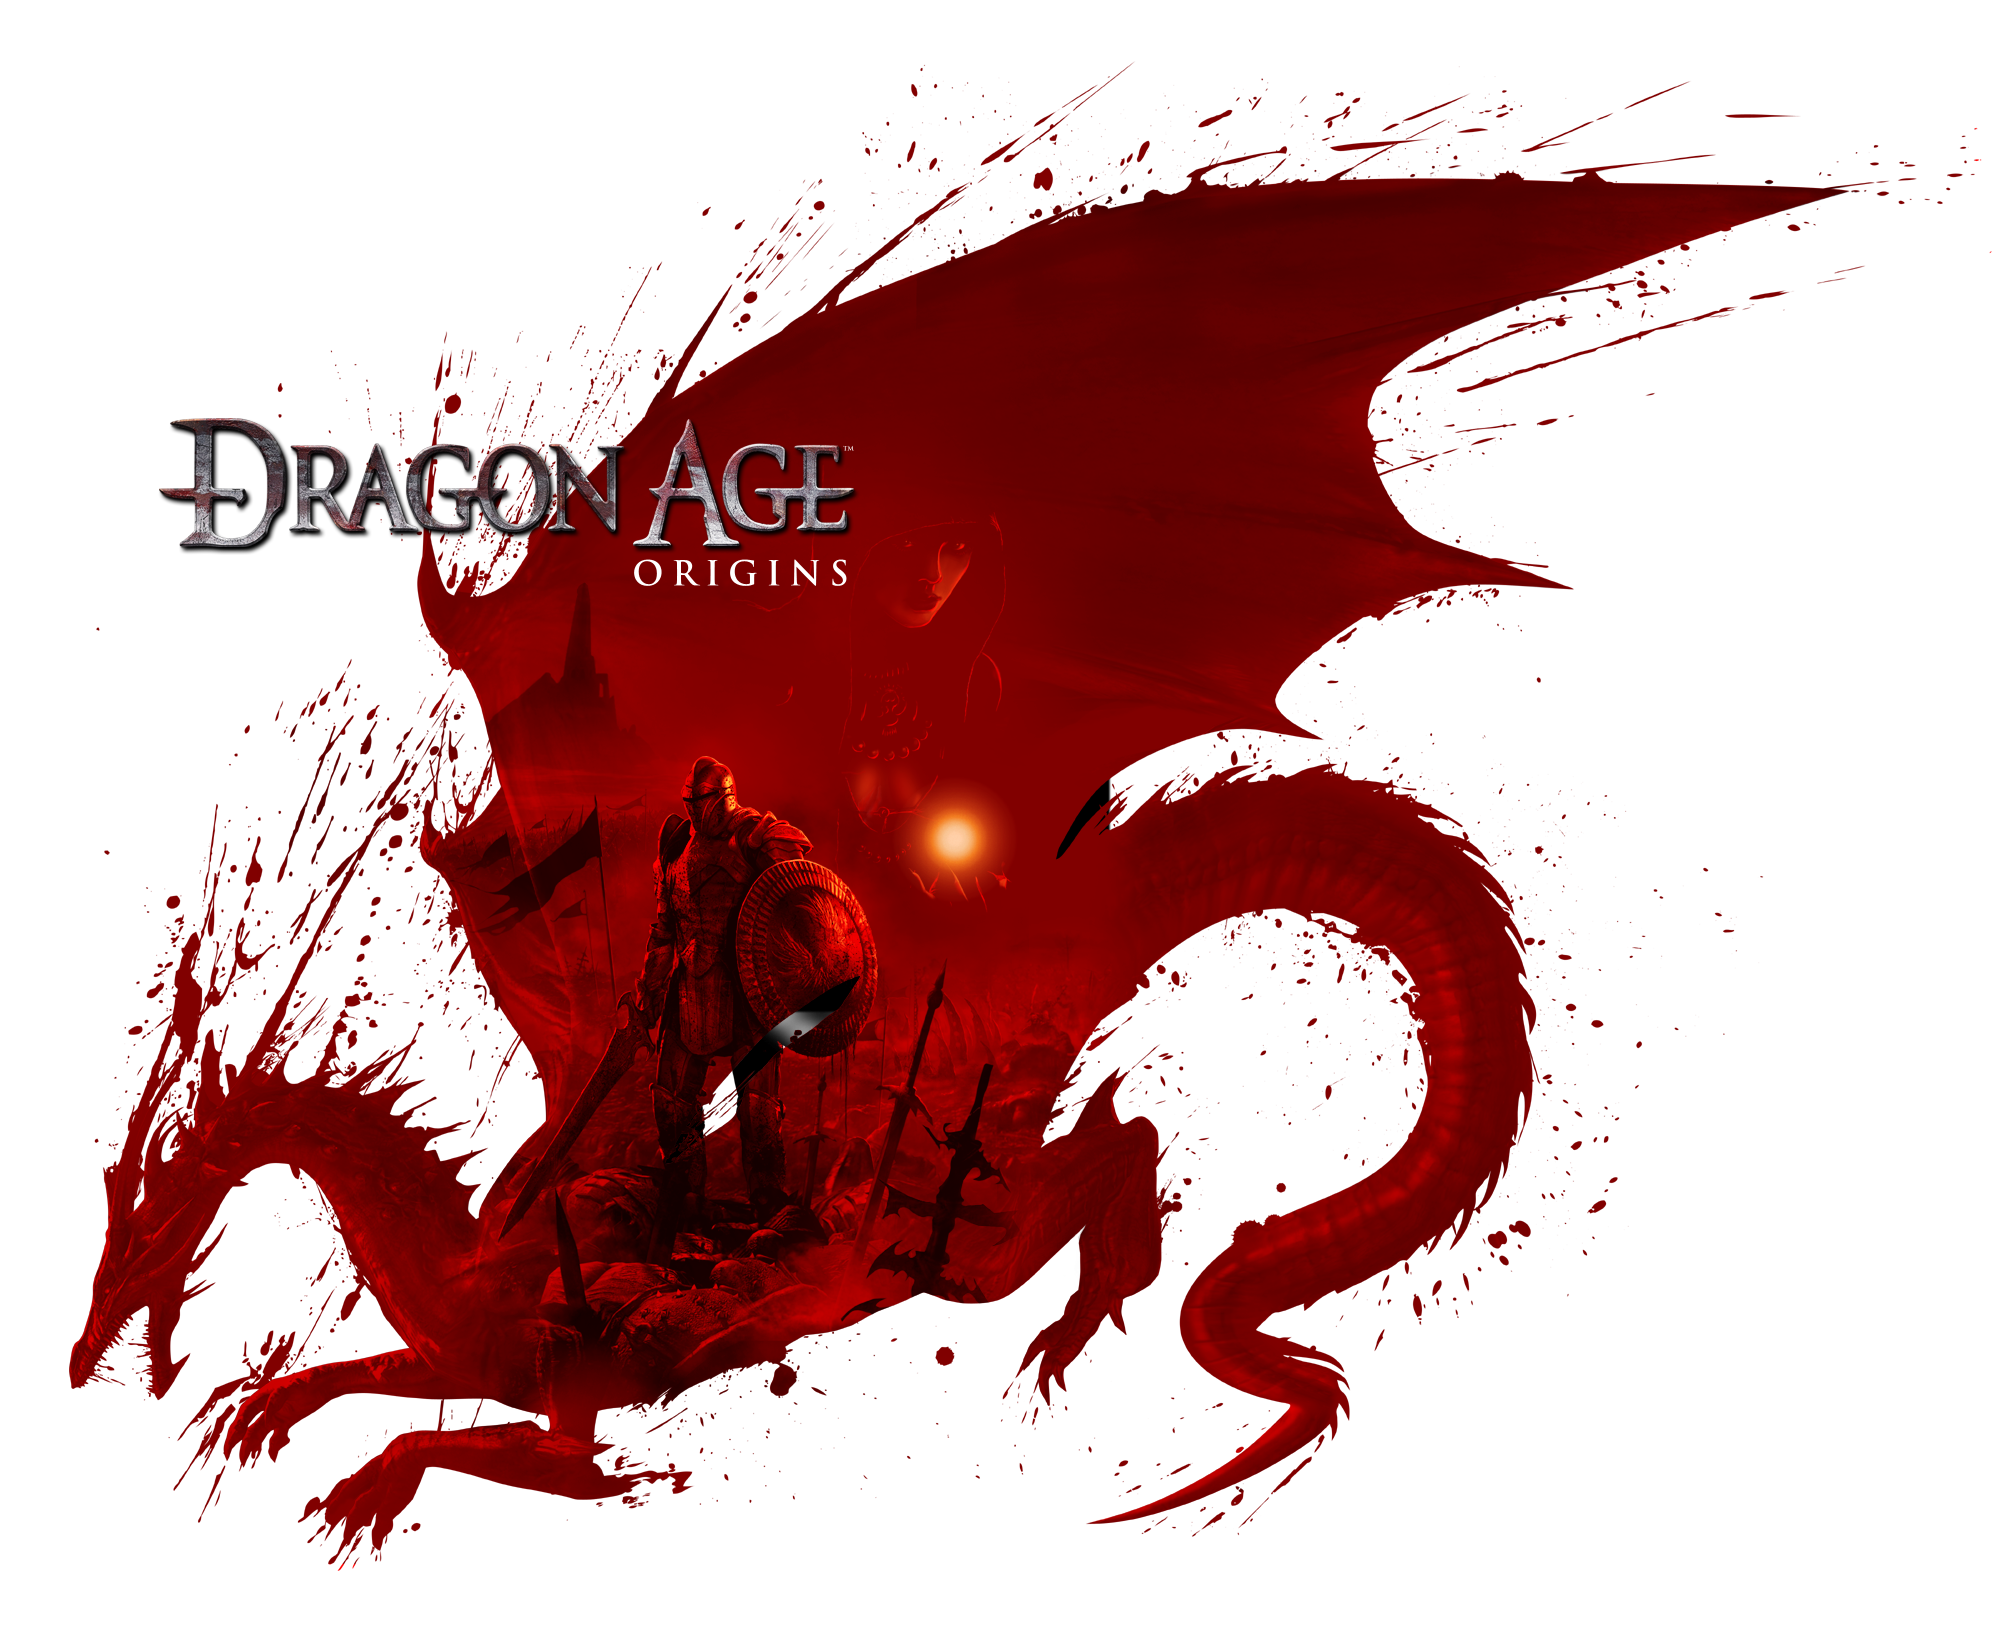 http://img3.wikia.nocookie.net/__cb20140702212511/dragonage/fr/images/e/e6/RedDragonwithlogo.png